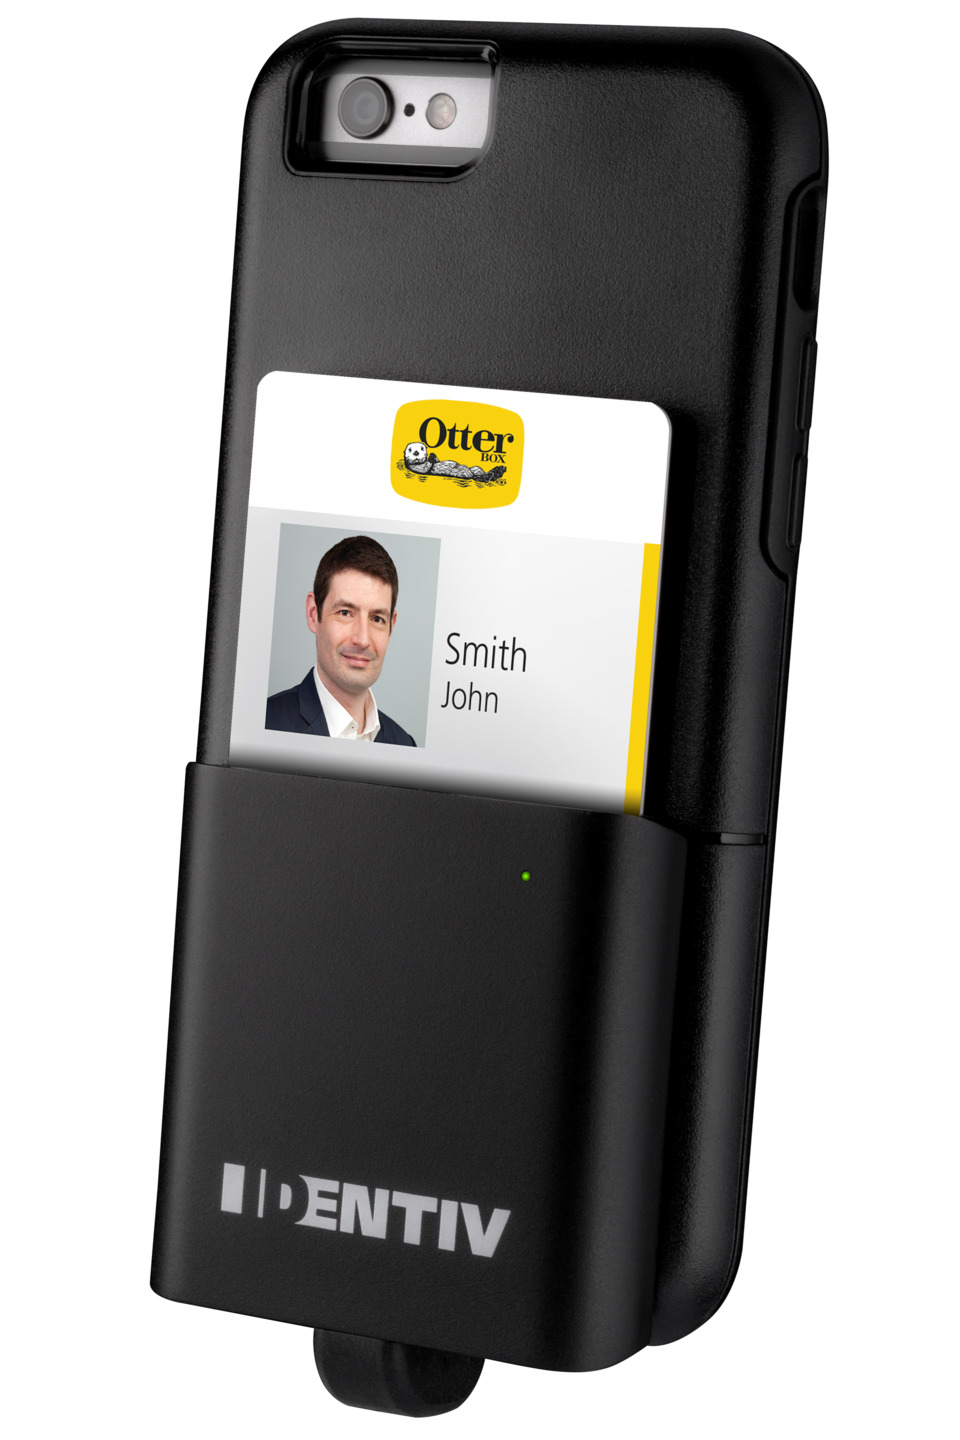 reputable site c14d2 7f3f4 Identiv Identiv's iAuthenticate 2.0 OtterBox in Reader Units